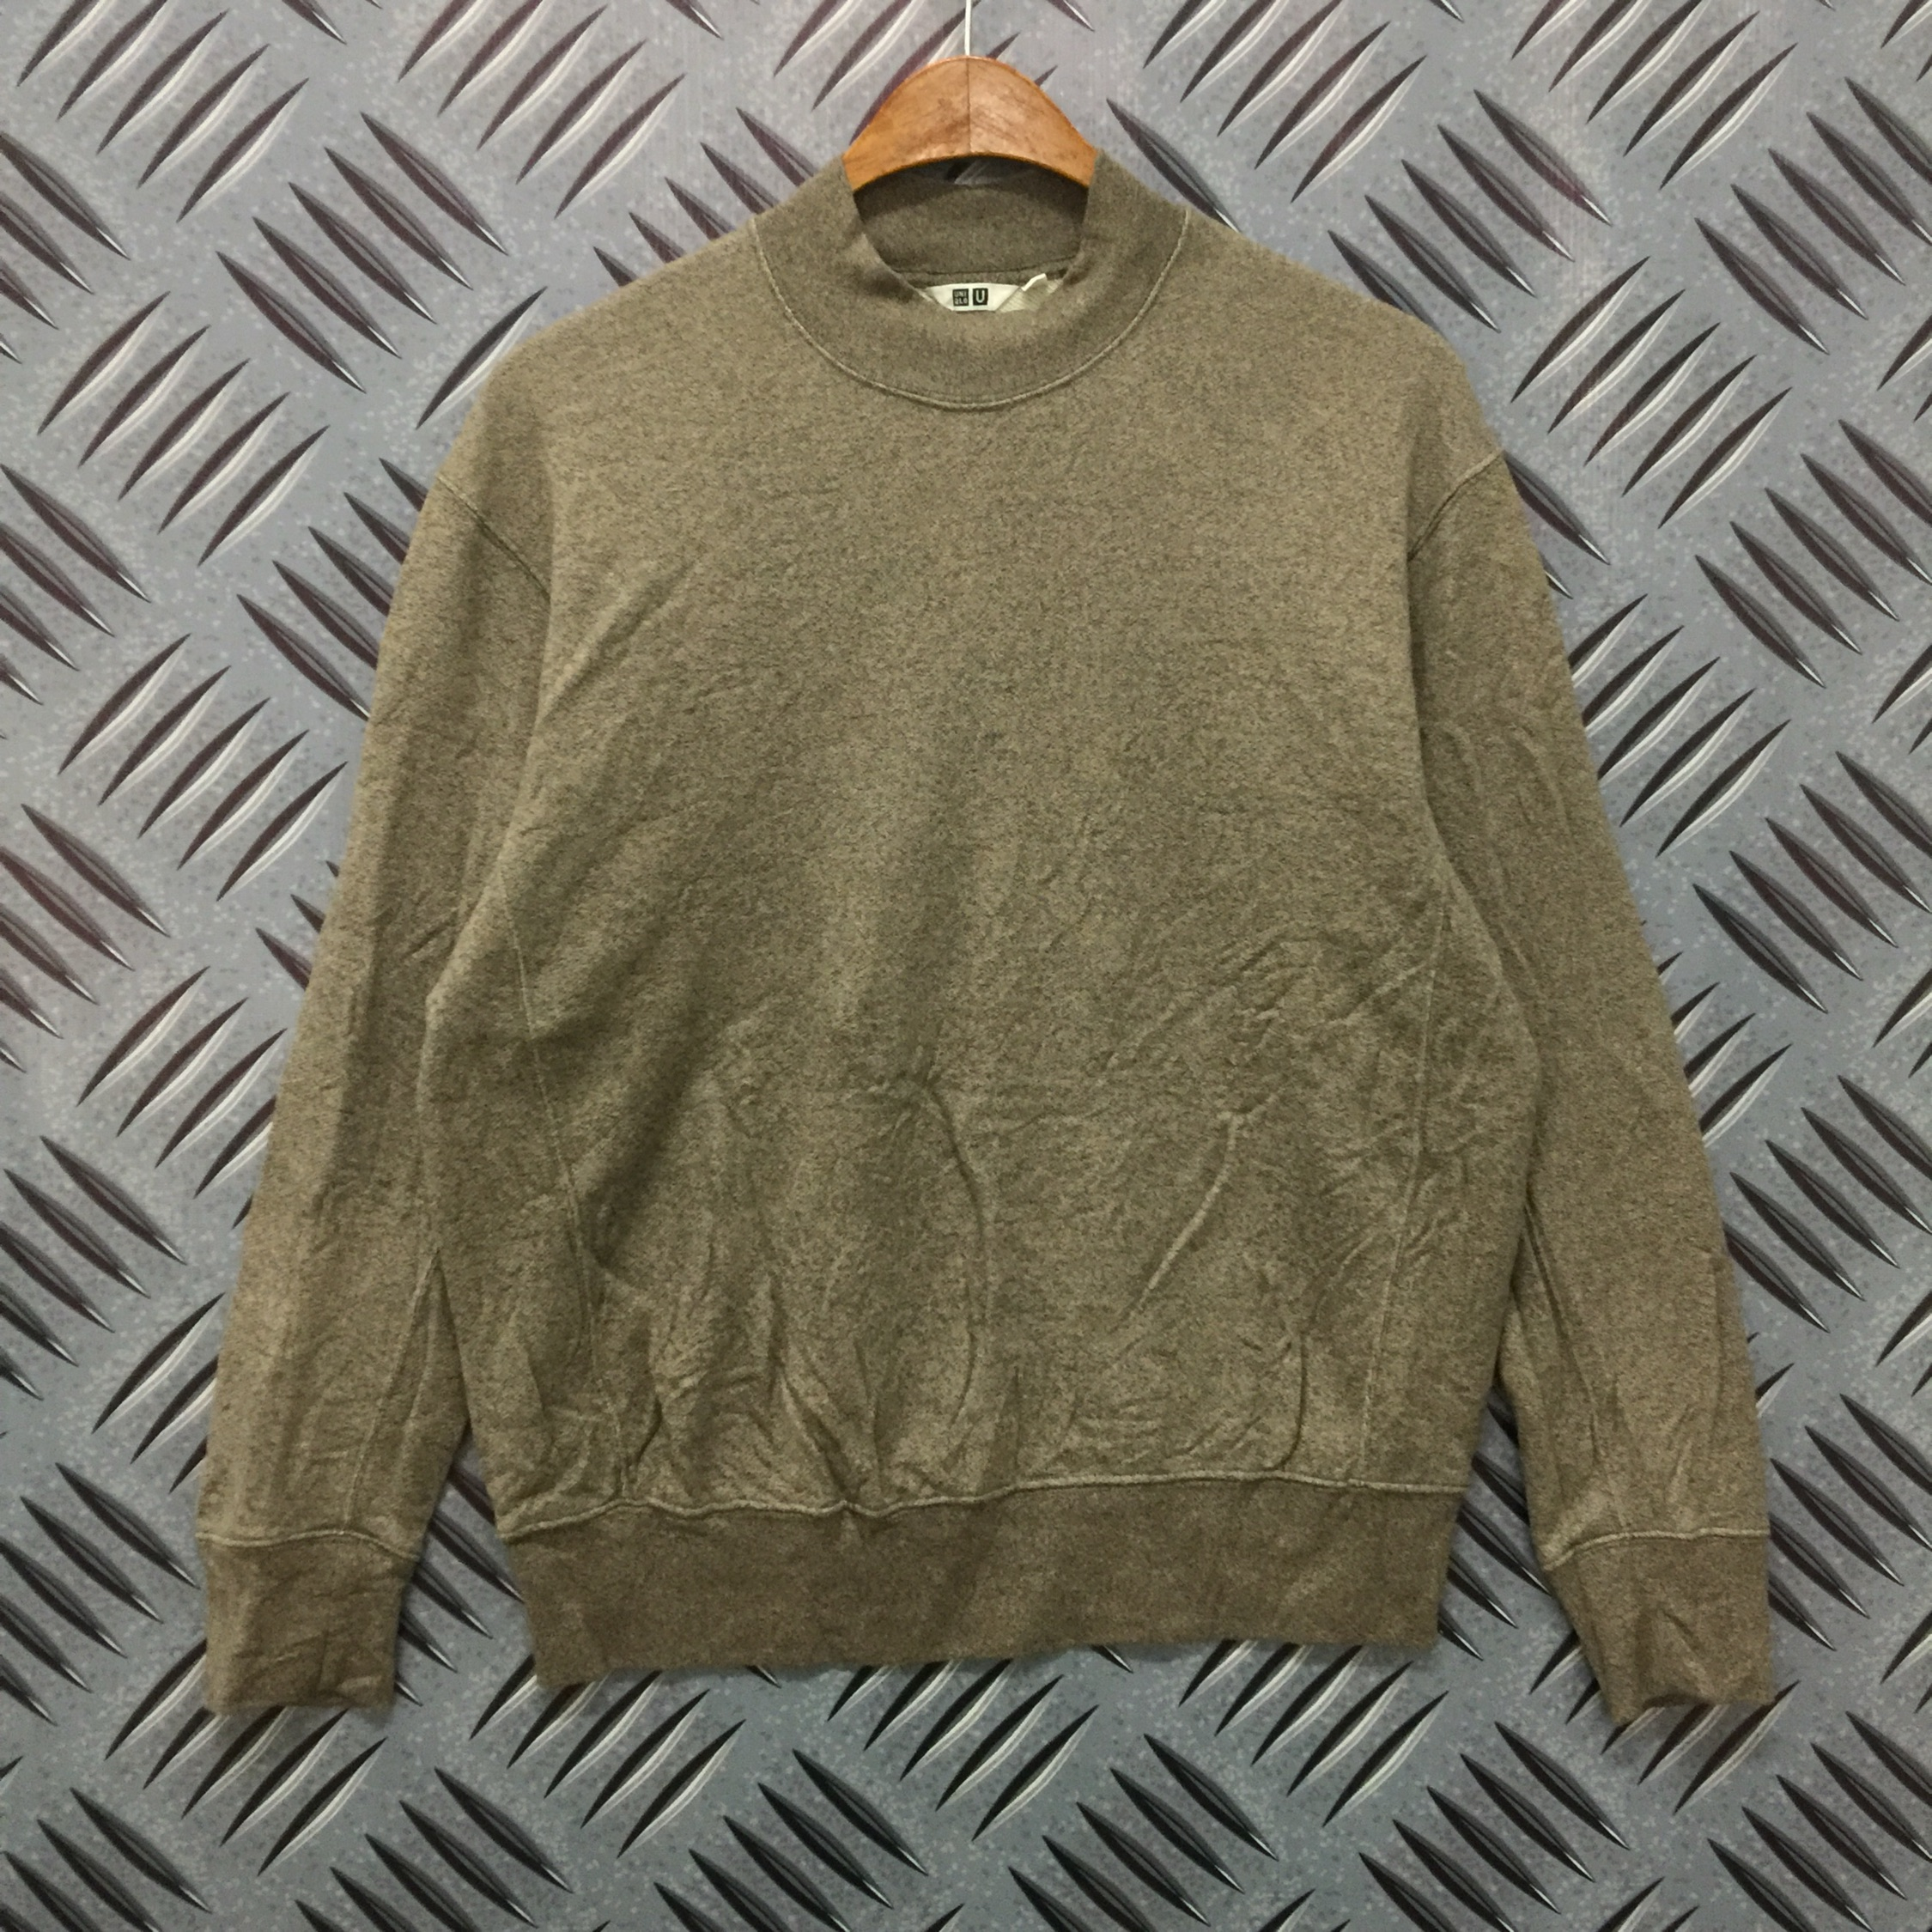 Uniqlo U Sweatshirt